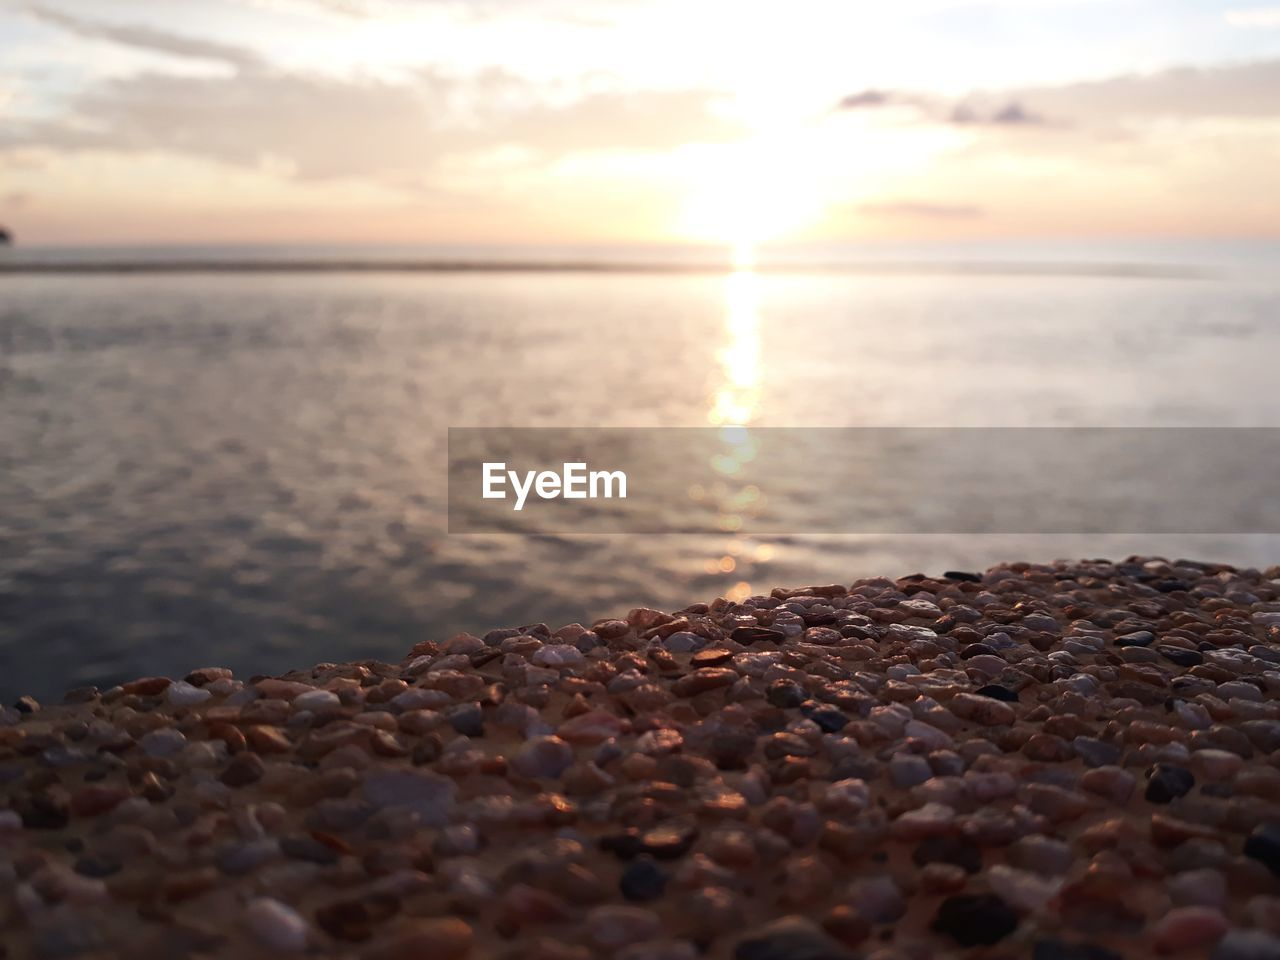 sky, water, sea, sunset, beach, scenics - nature, beauty in nature, horizon, tranquil scene, tranquility, horizon over water, rock, stone - object, nature, solid, cloud - sky, land, sun, selective focus, pebble, no people, outdoors, surface level